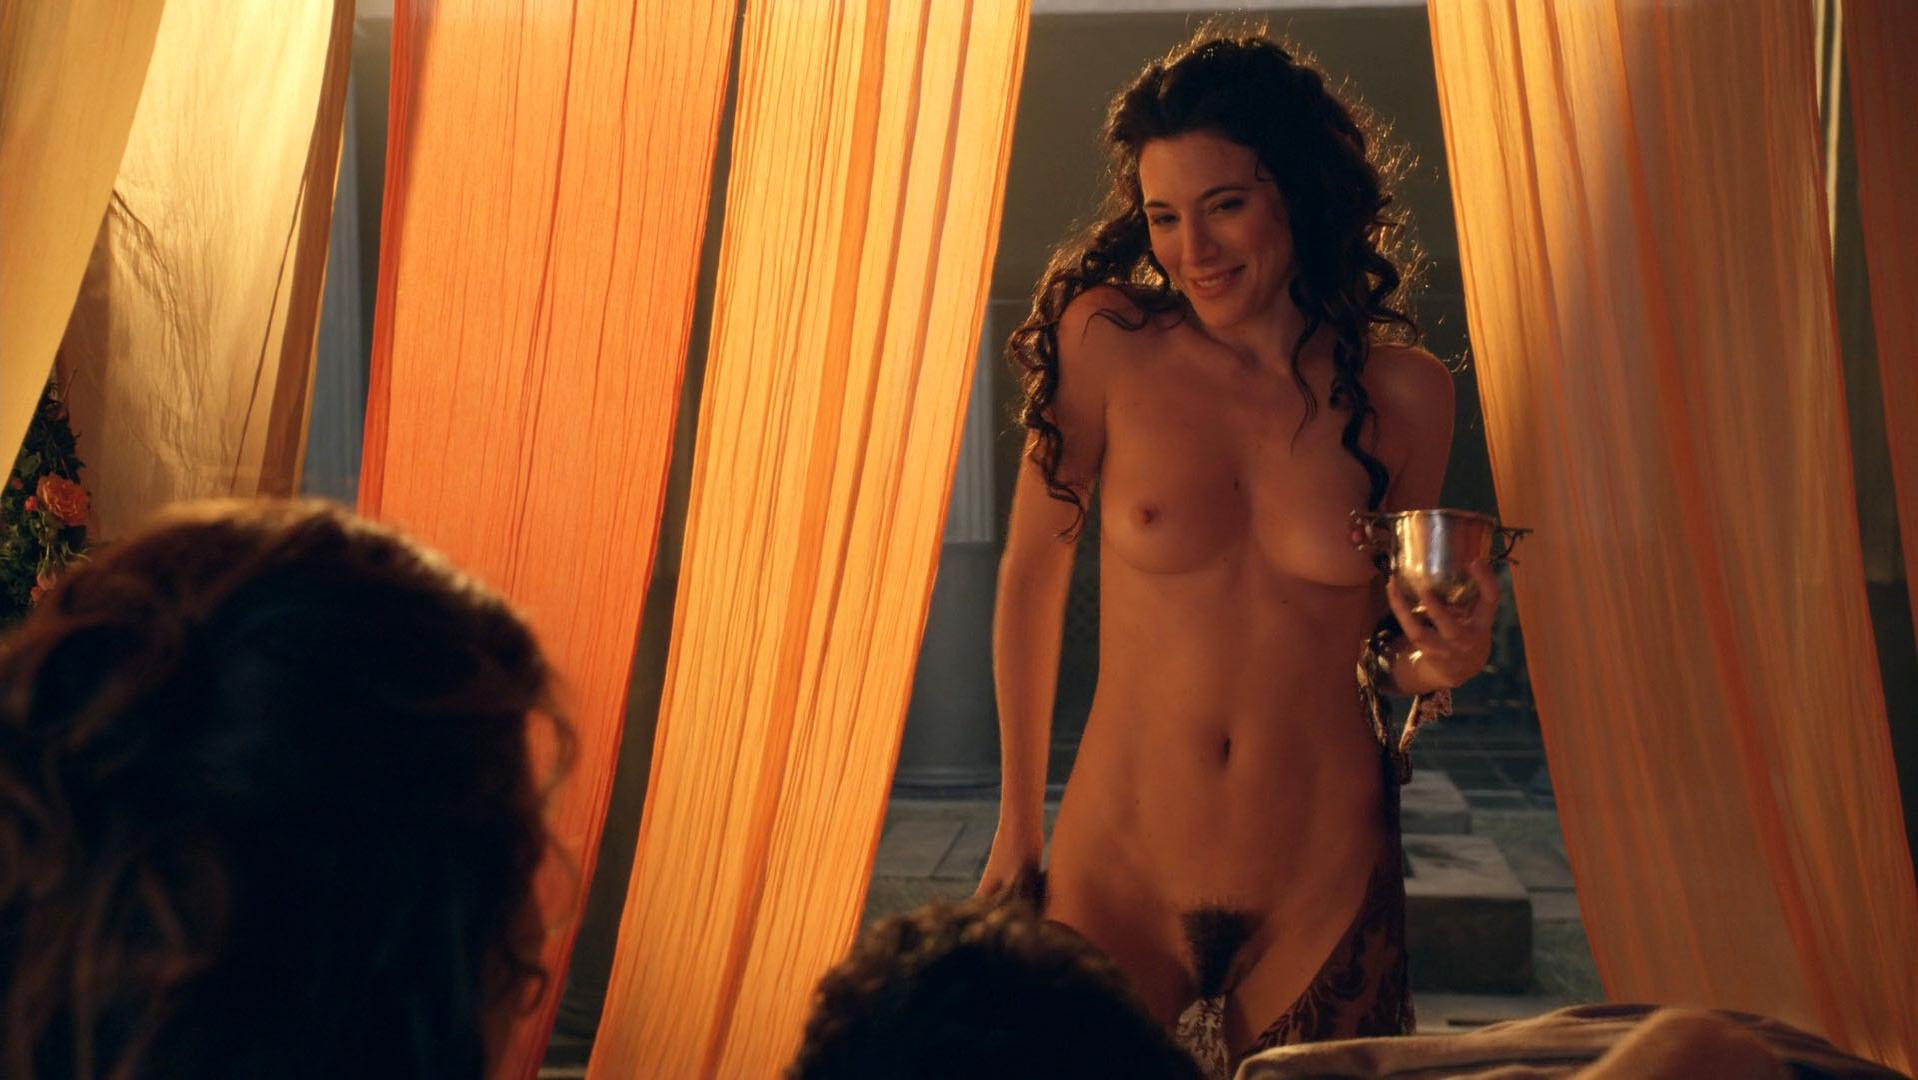 Lucy Lawless Full Frontal photo 9